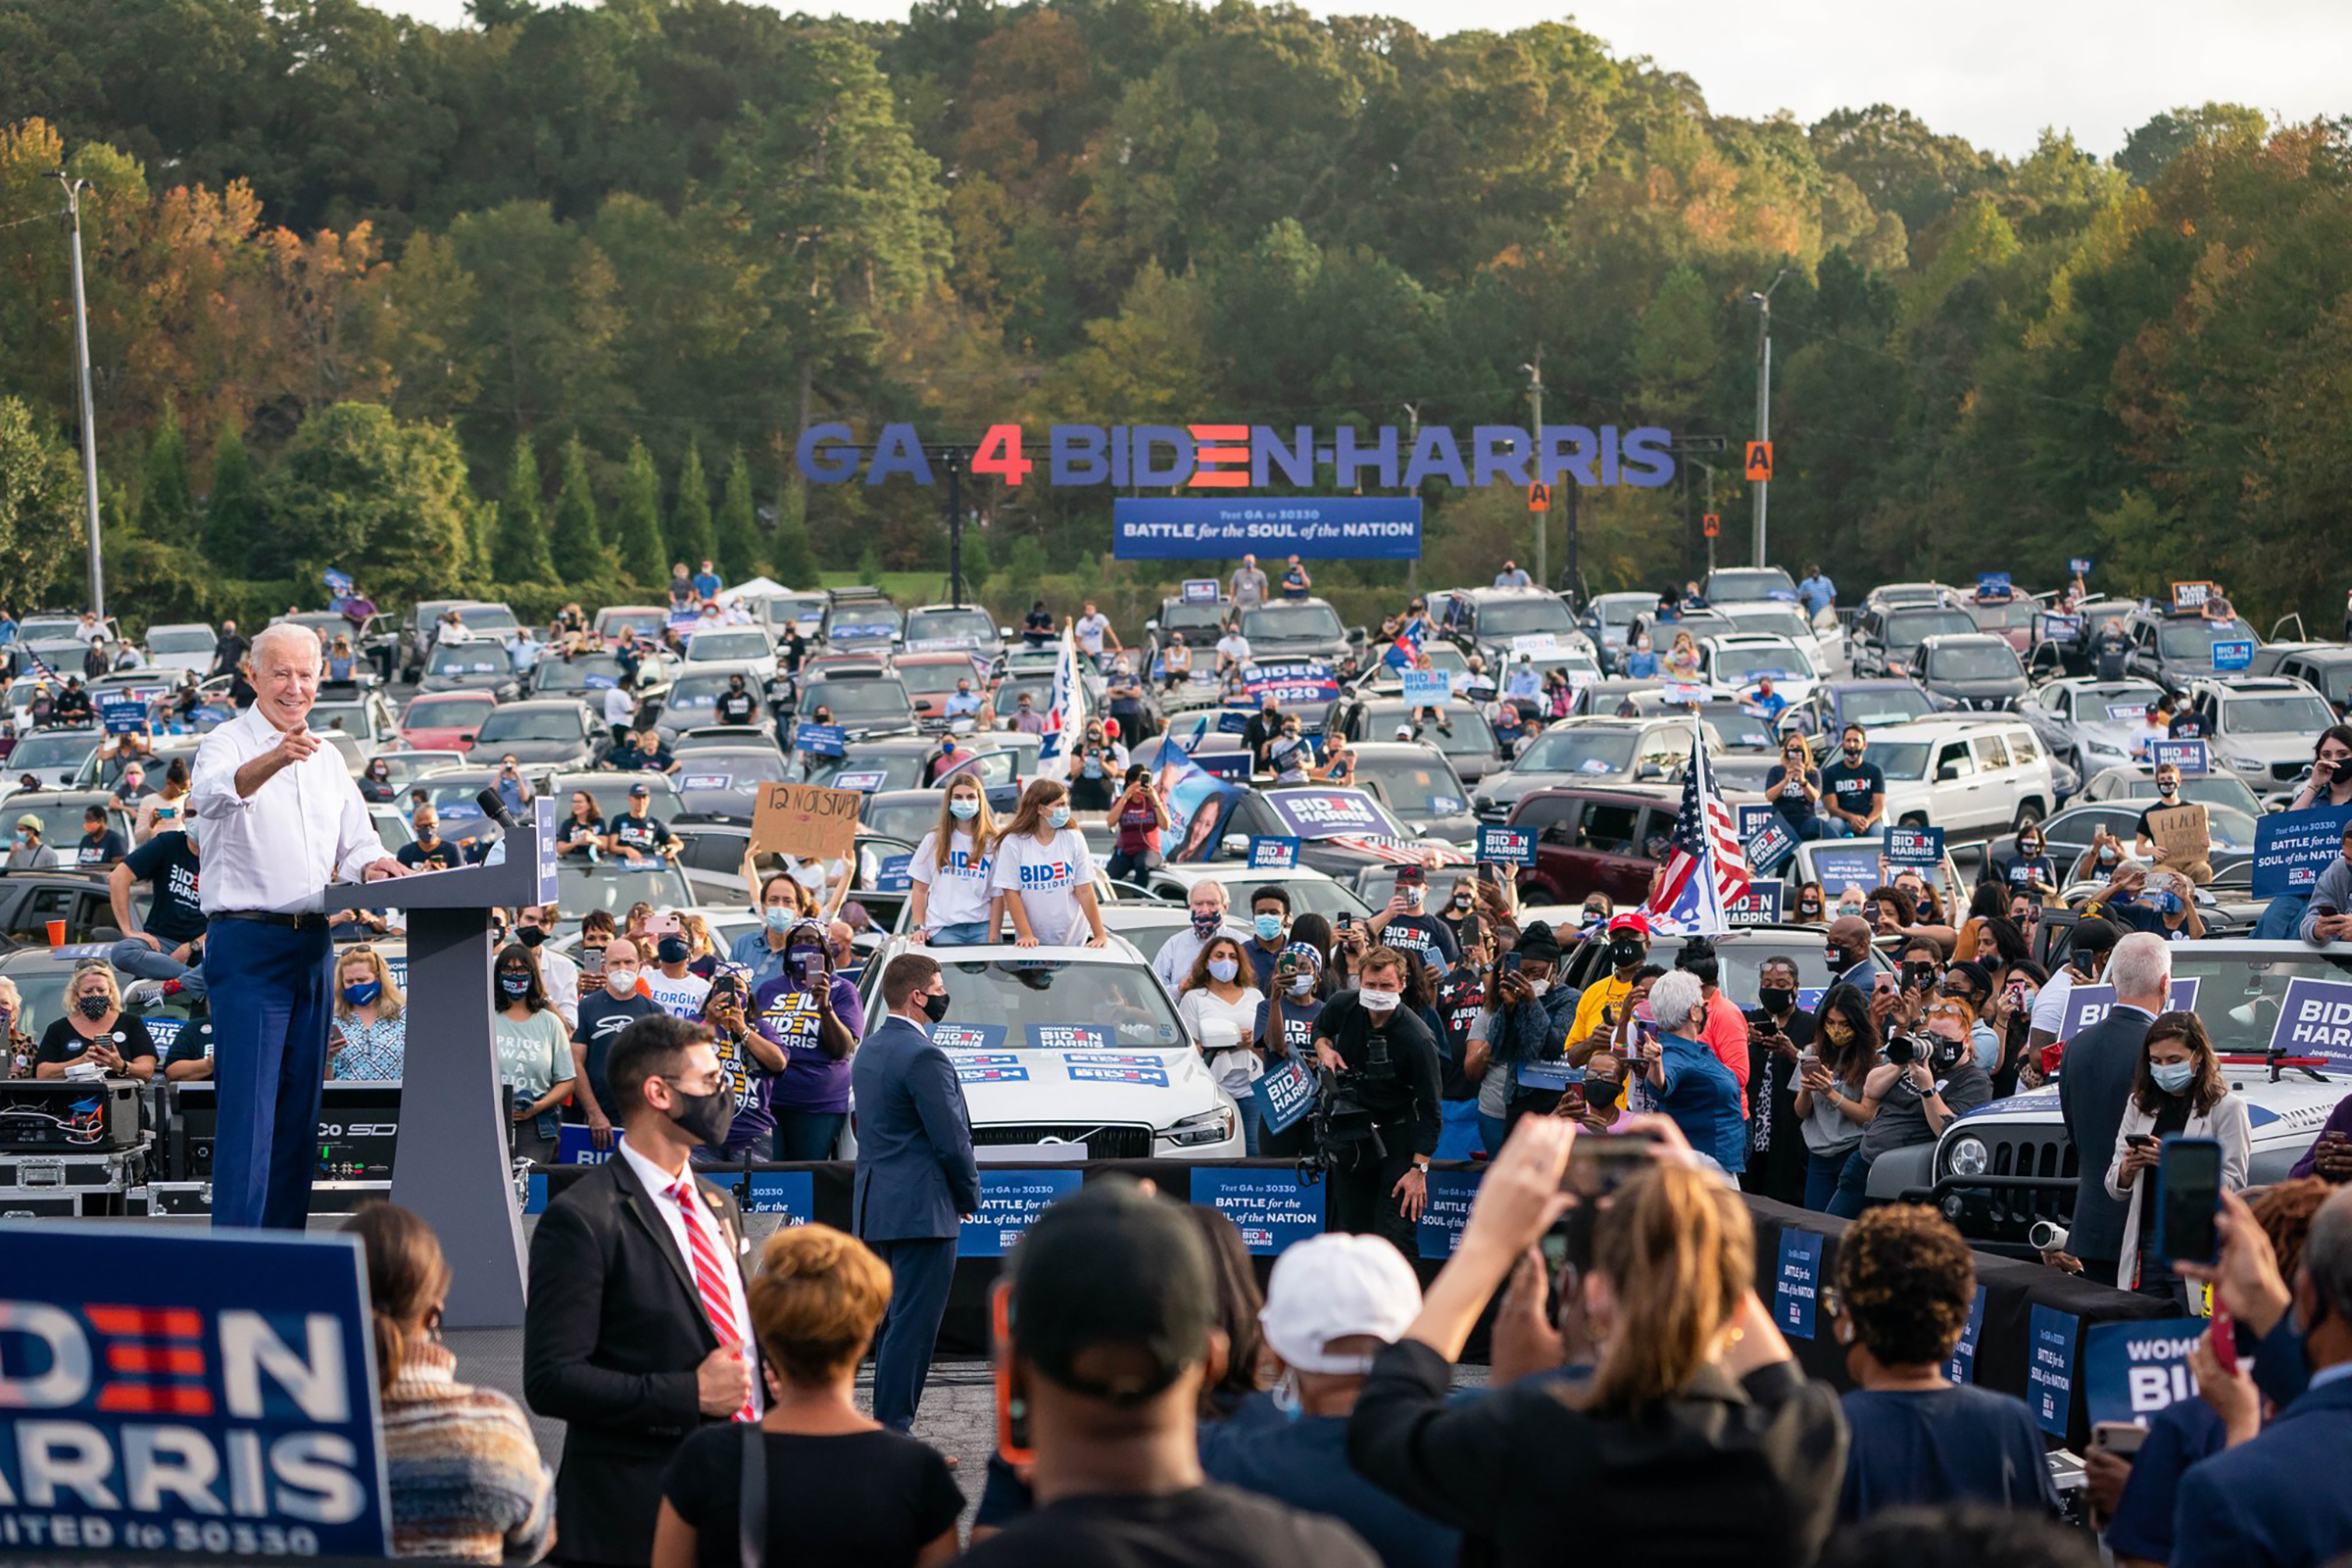 Biden interacts with voters at a car rally in Georgia